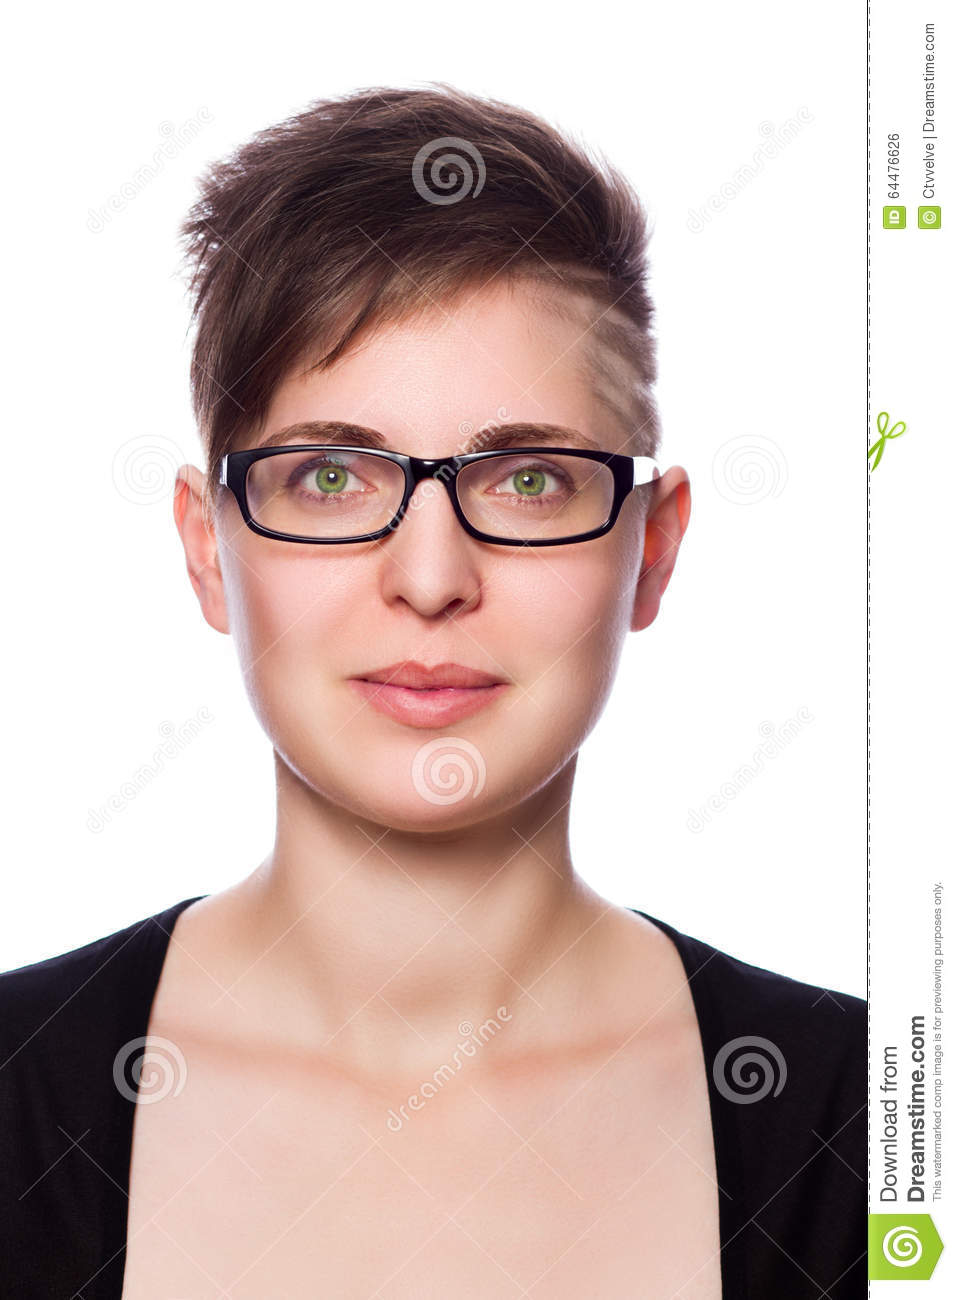 Short hairstyles with glasses - Beautiful Business Glasses Hair Isolated Modern Short